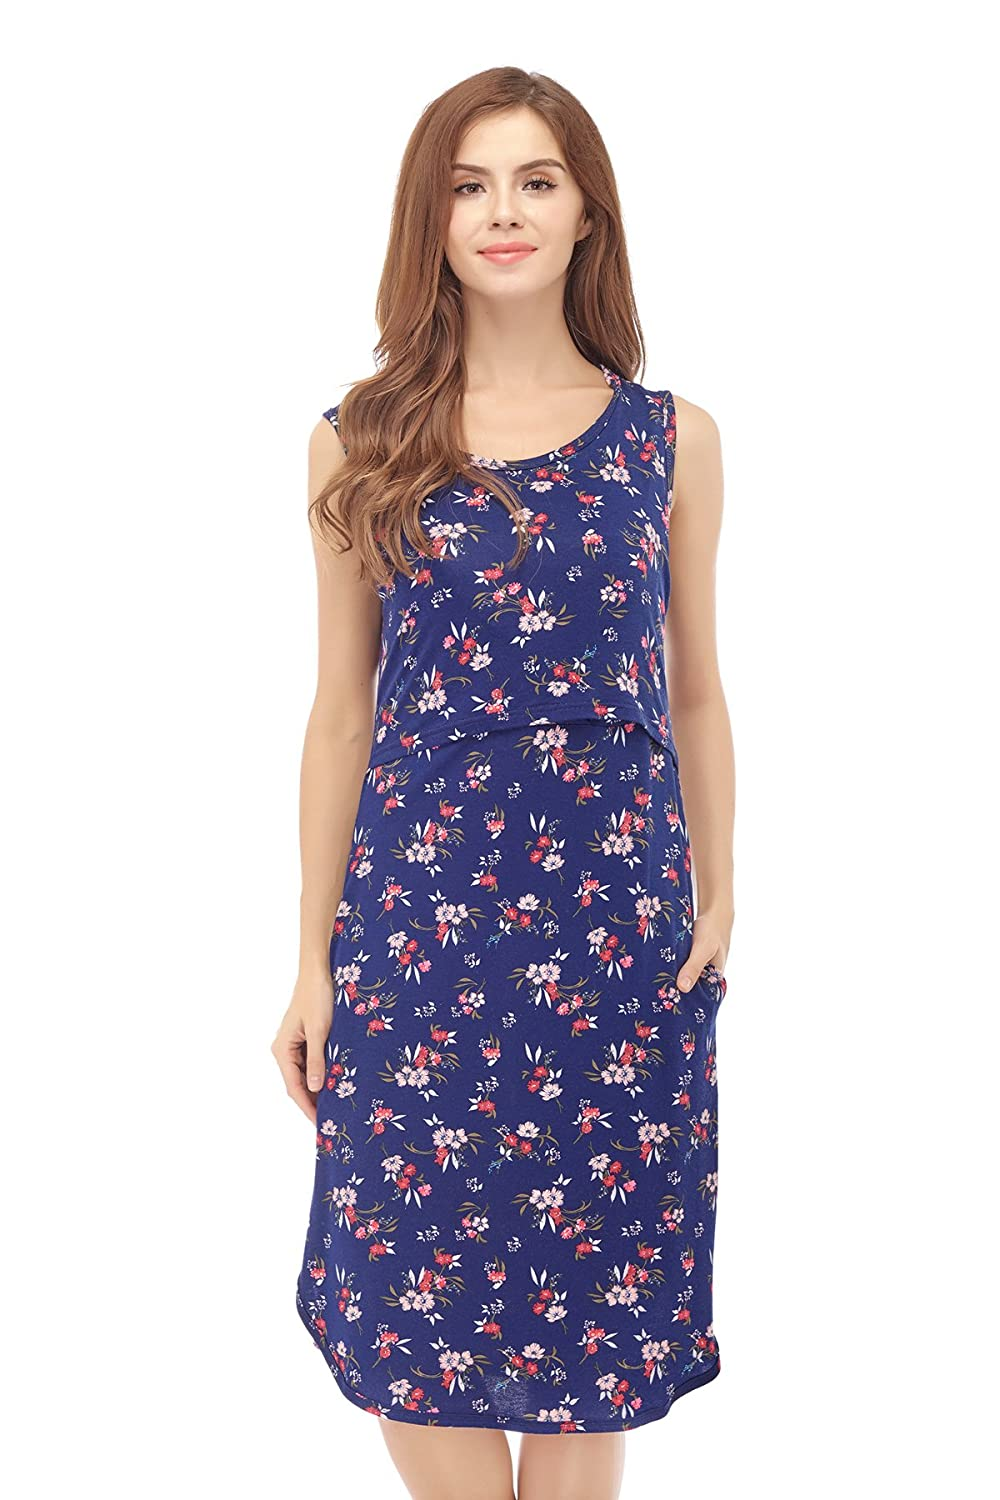 Bearsland Women's Maternity Summer Flower Breastfeeding Nursing Dresses